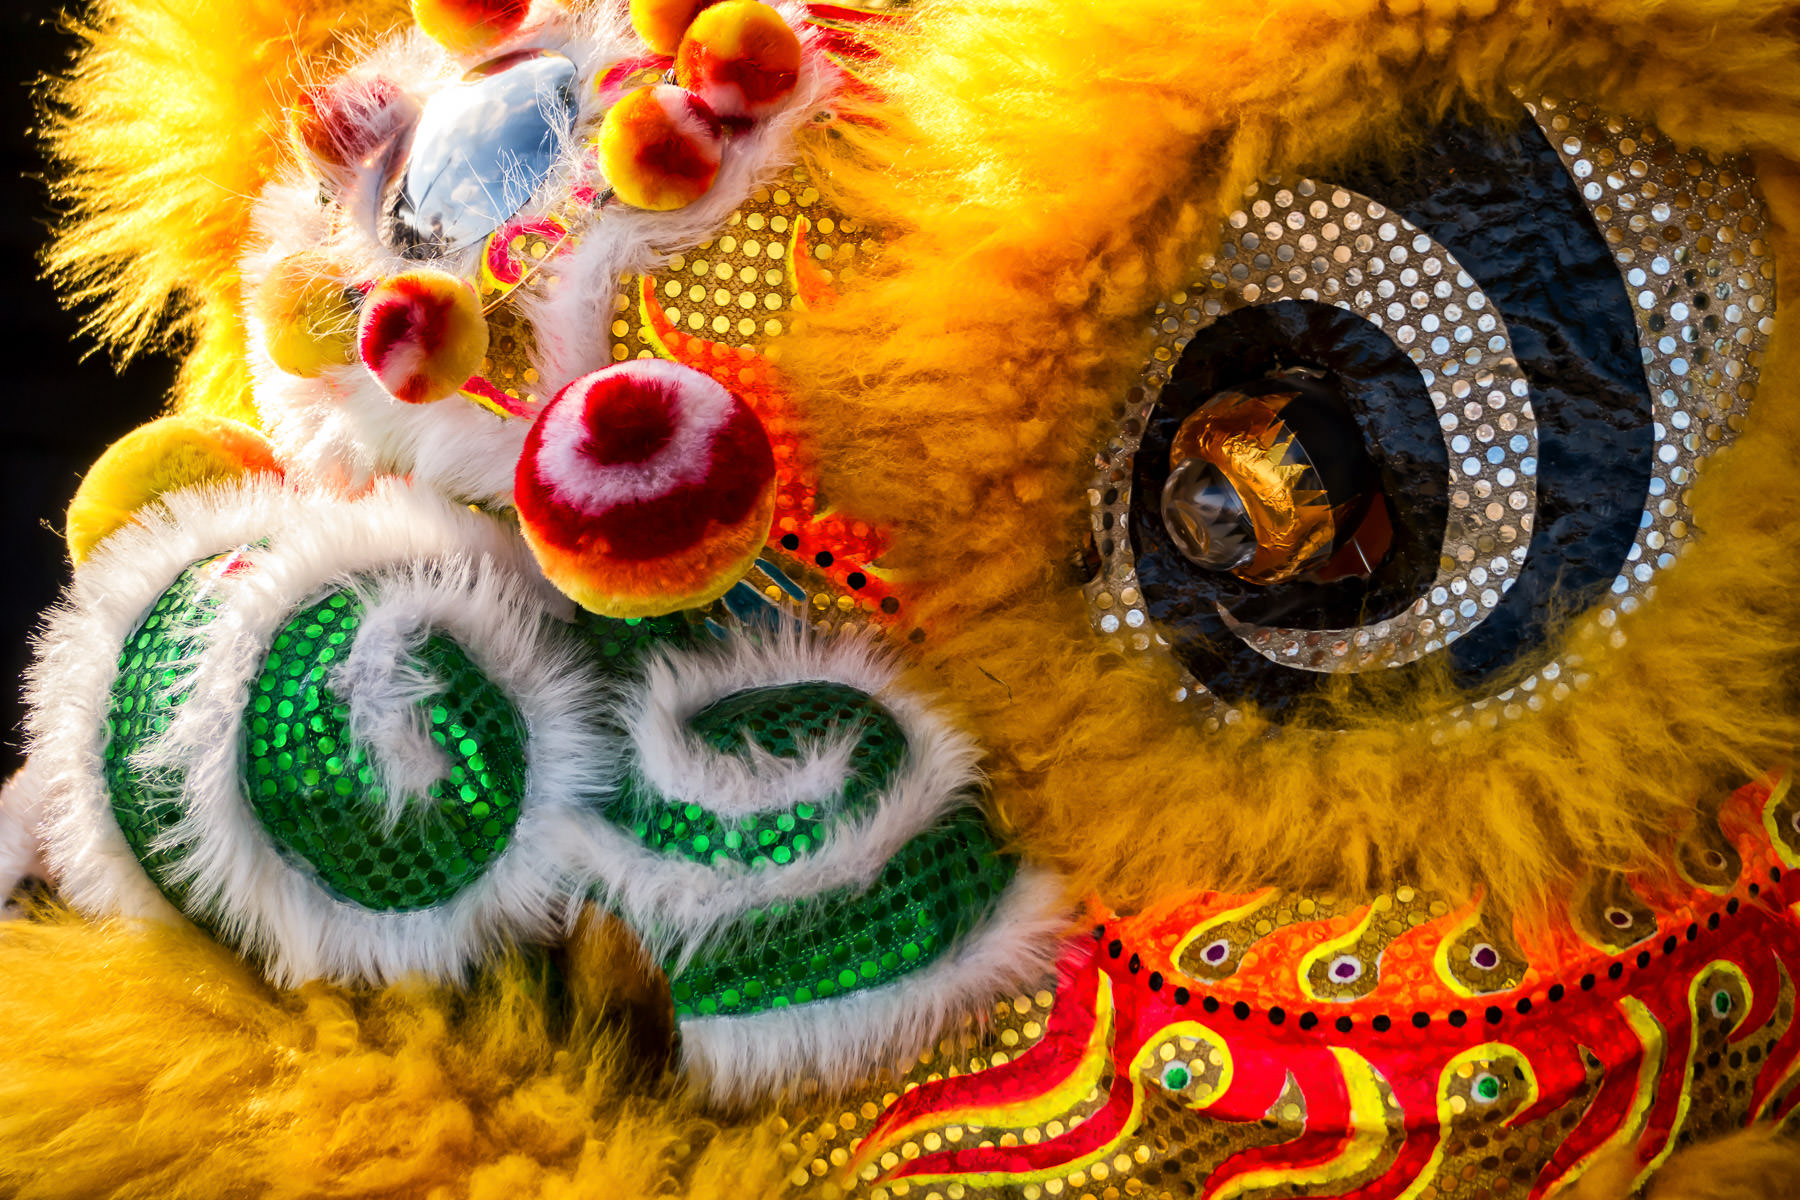 Detail of a traditional lion costume for performing a lion dance (舞狮) at the 2014 DFW Dragon Boat Festival at Lake Carolyn, Las Colinas, Irving, Texas.